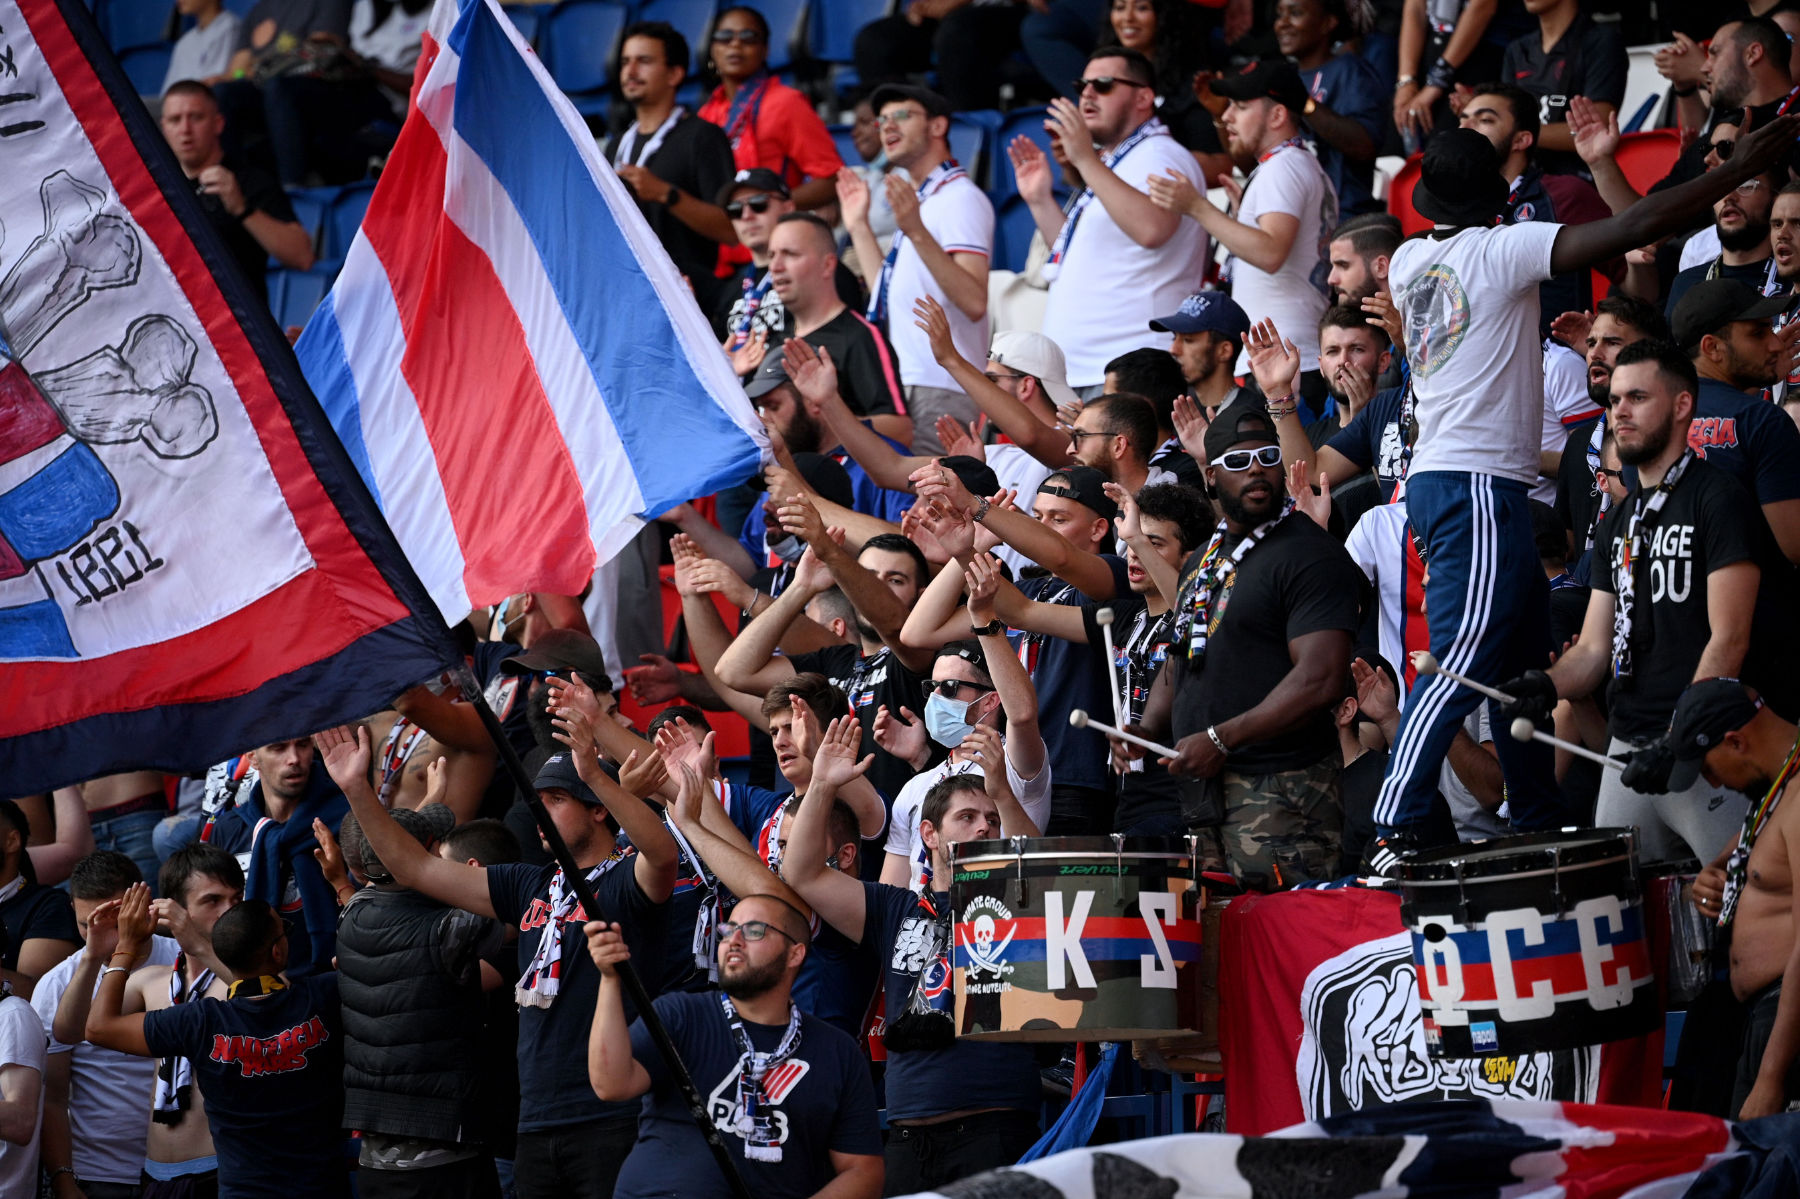 Psg Supporters Criticized For Not Adhering To Mask And Social Distancing Rules Psg Talk